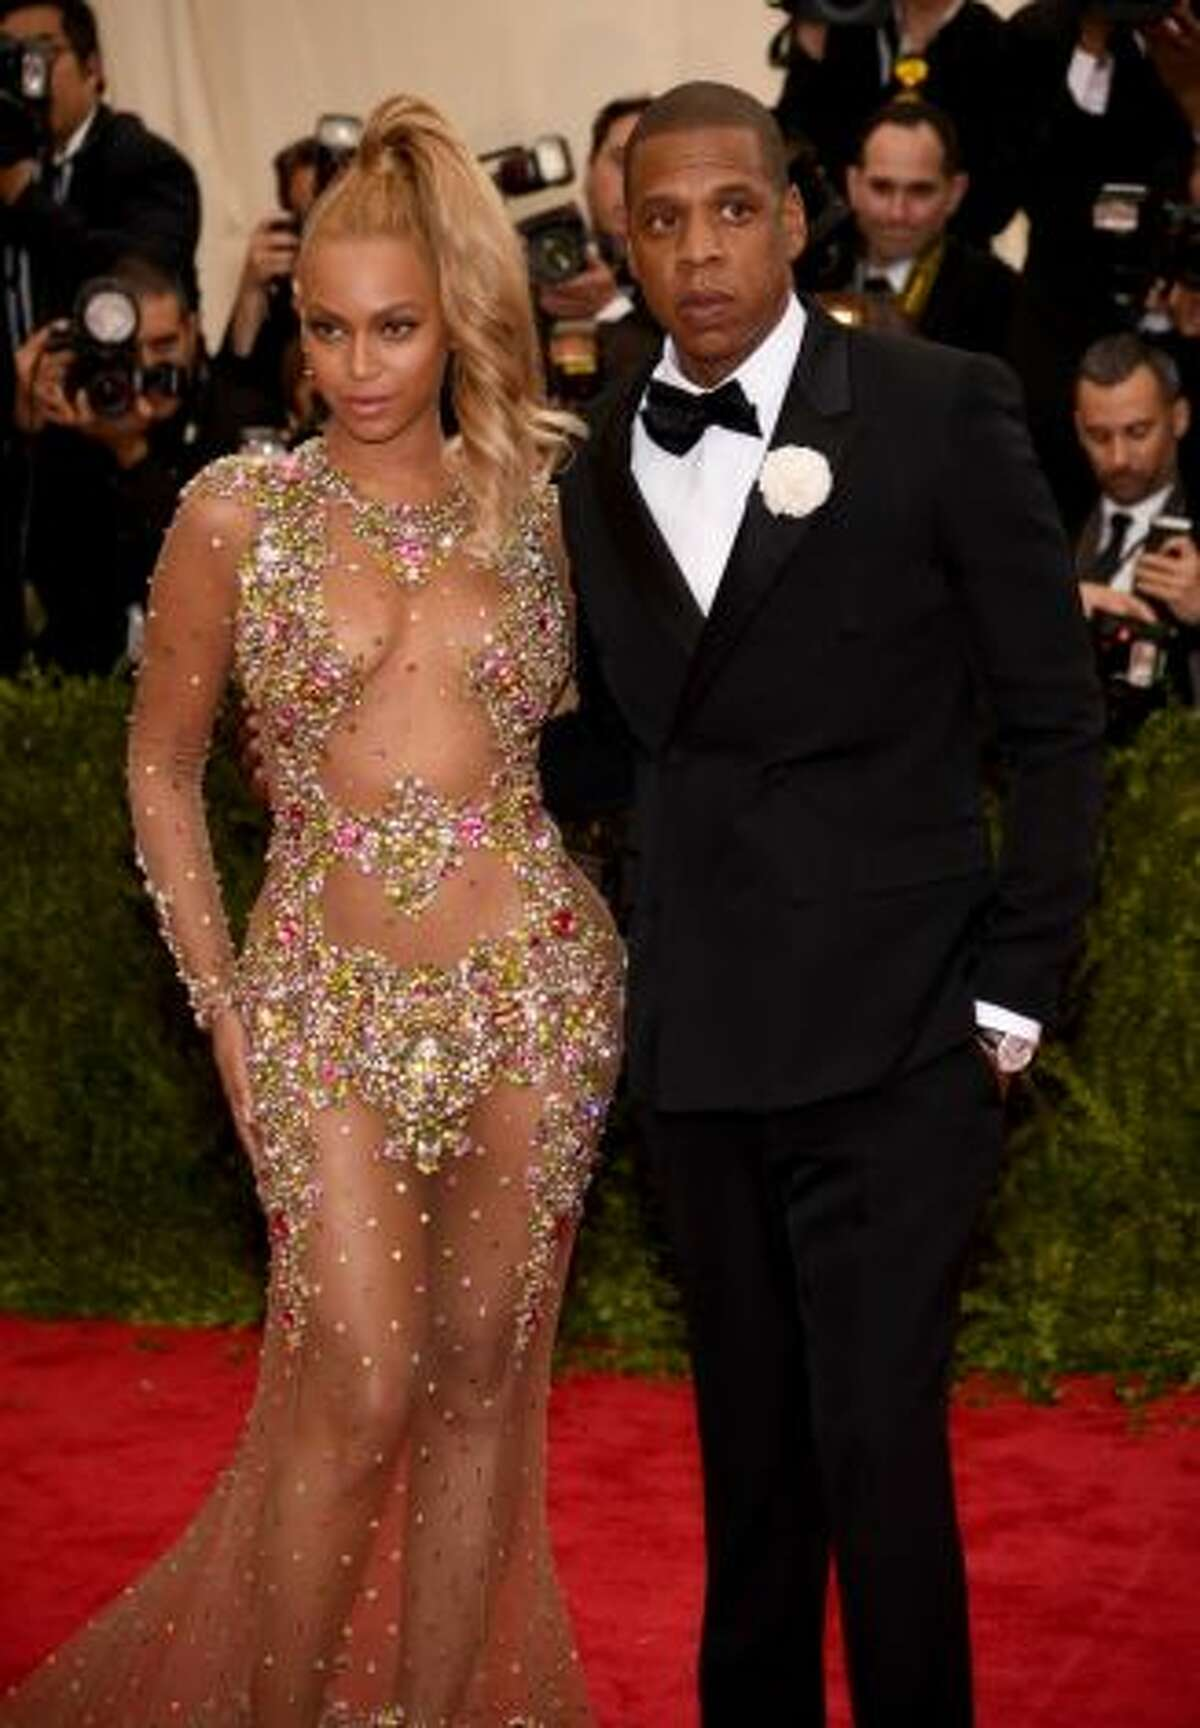 Beyonce and JAY-Z are going on tour, but not in Seattle, it appears.